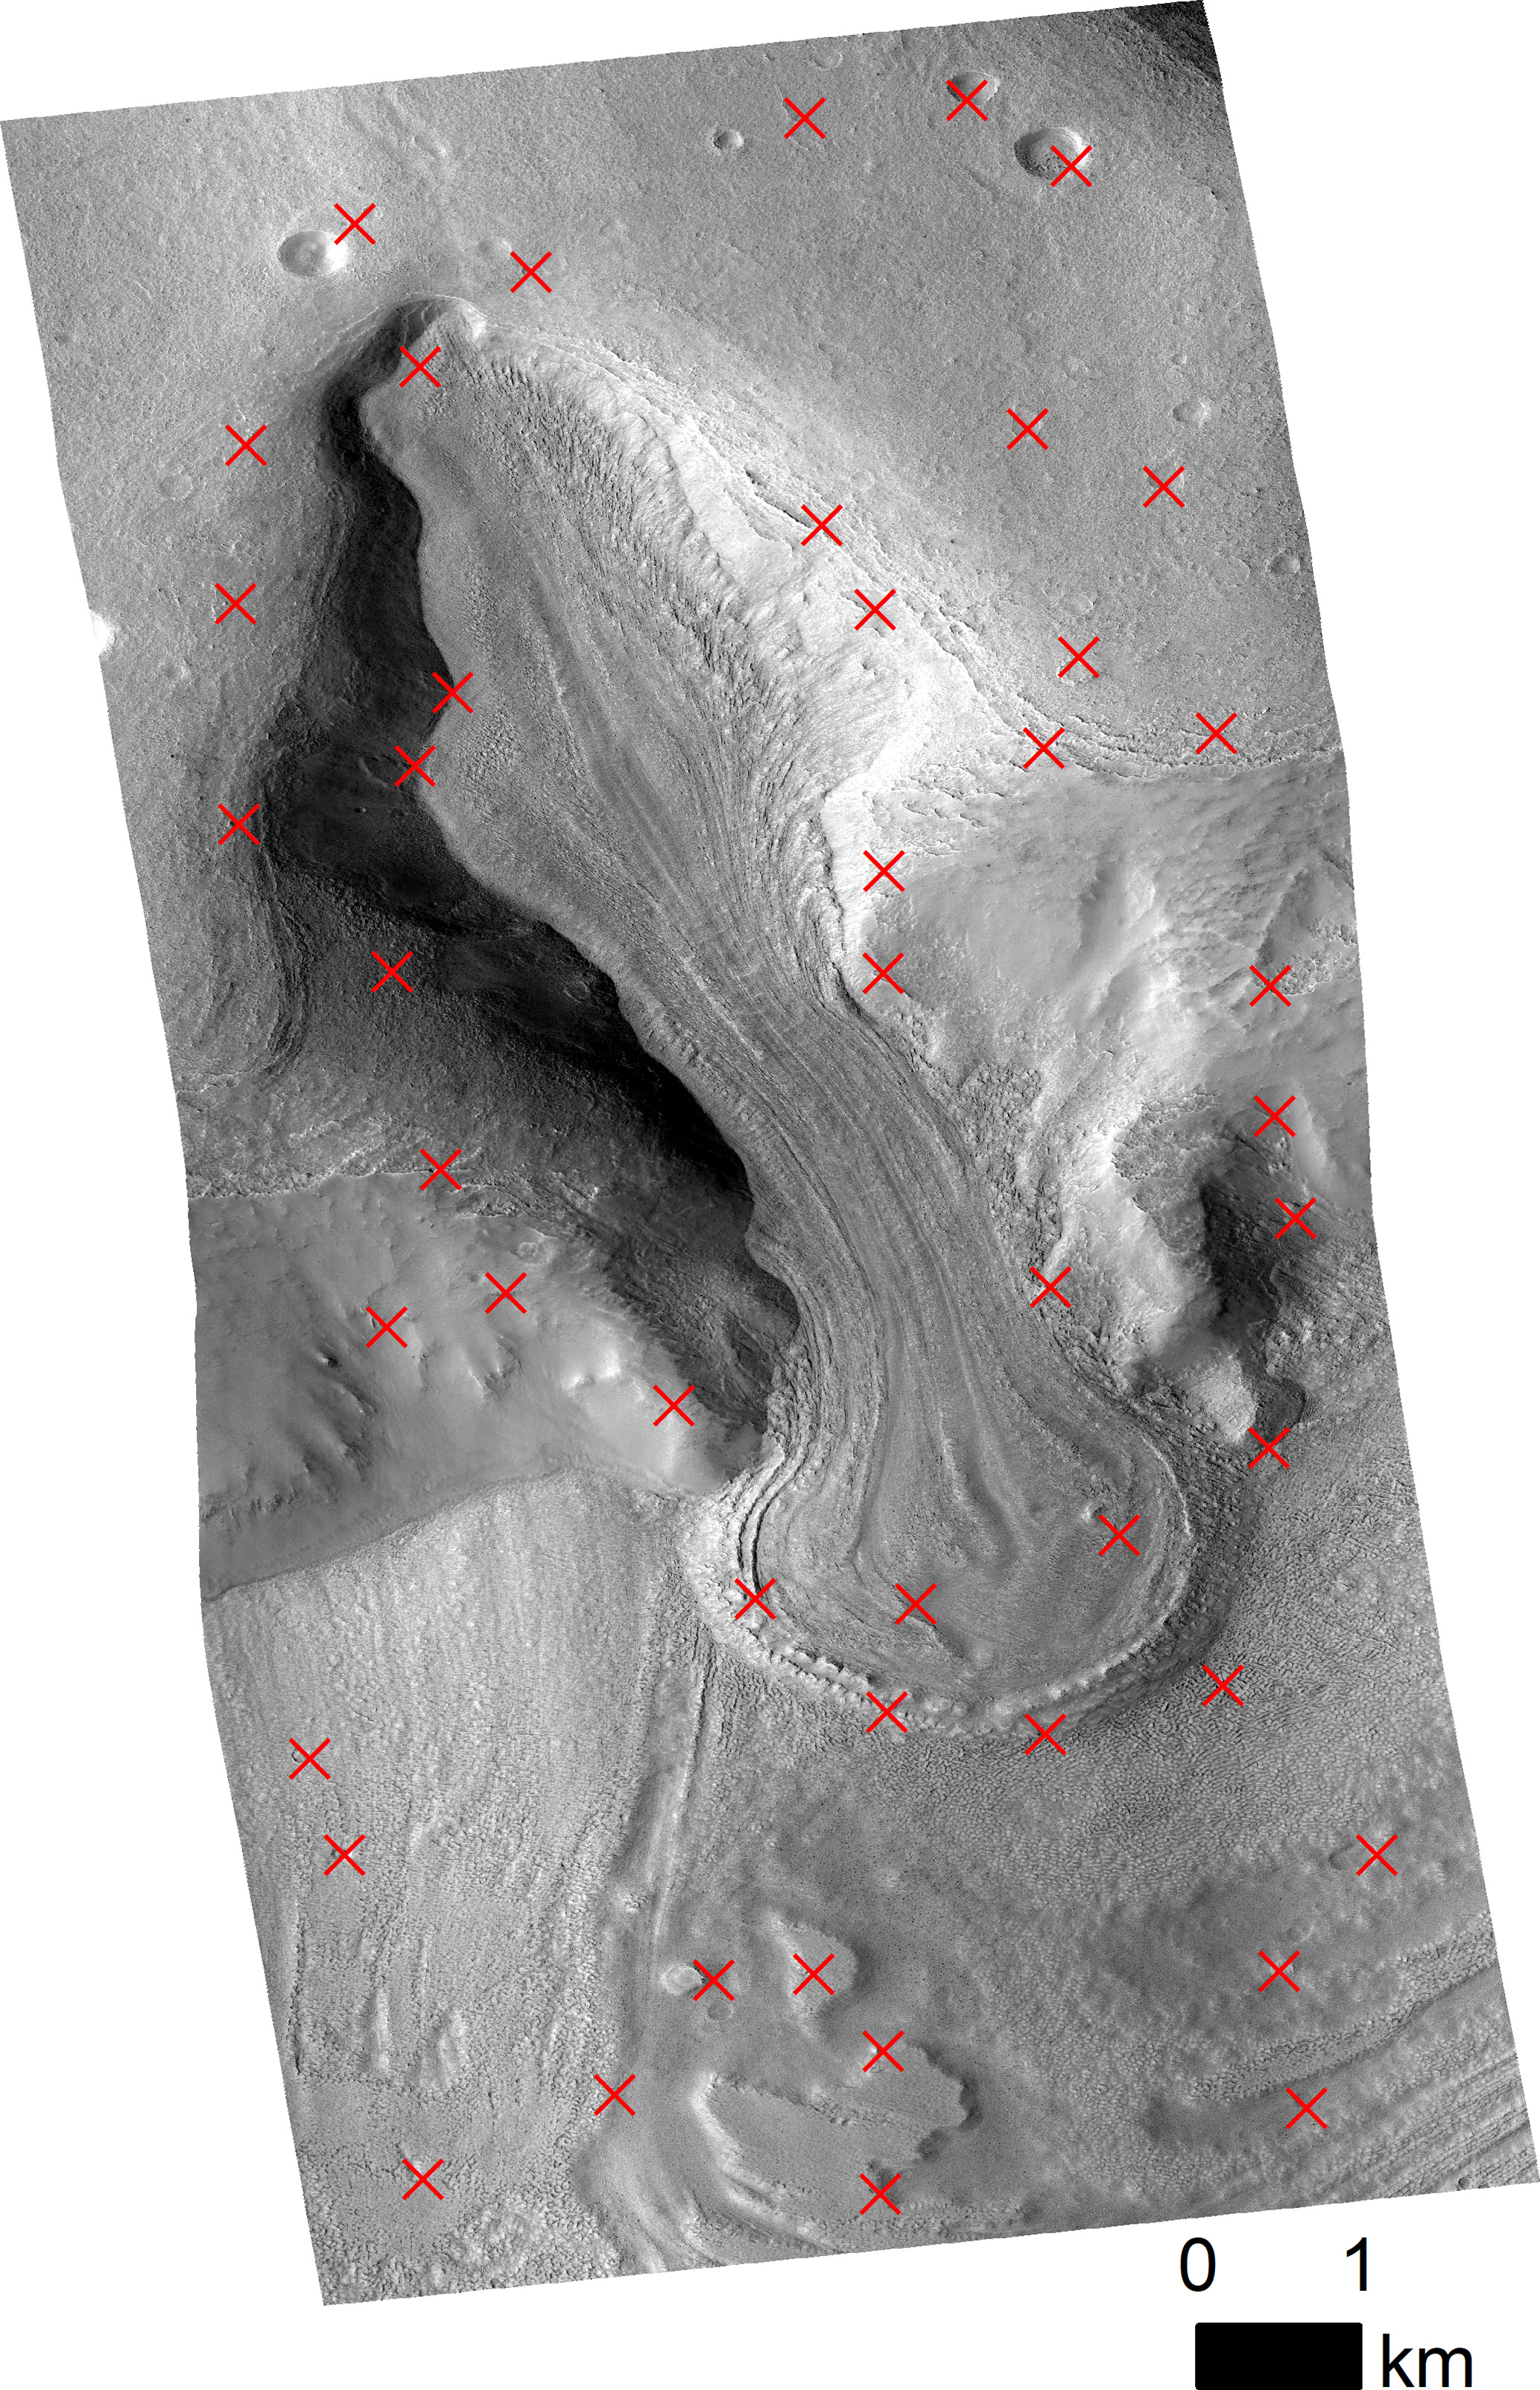 Gi Creating Hirise Digital Elevation Models For Mars Using The Open Source Ames Stereo Pipeline